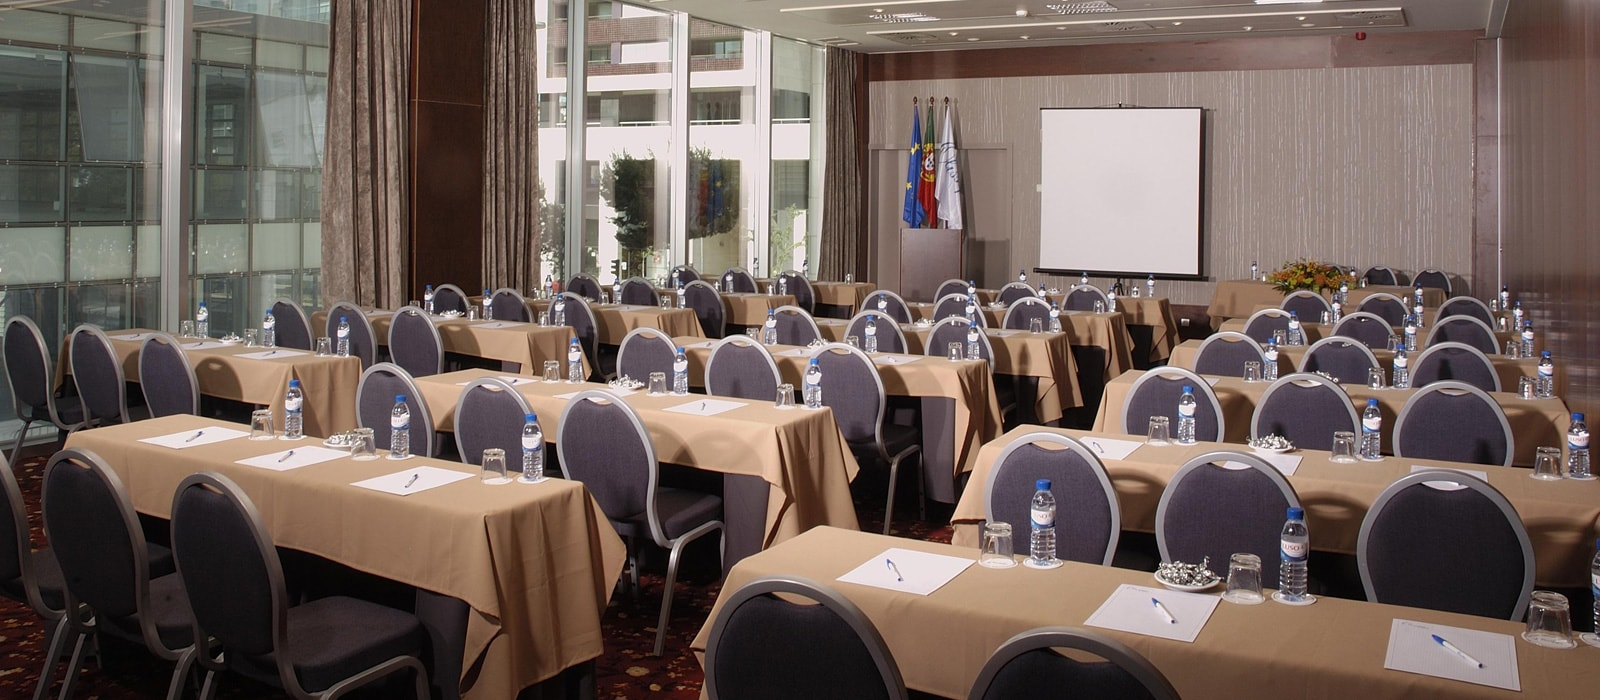 Meetings & Events Olissippo Oriente